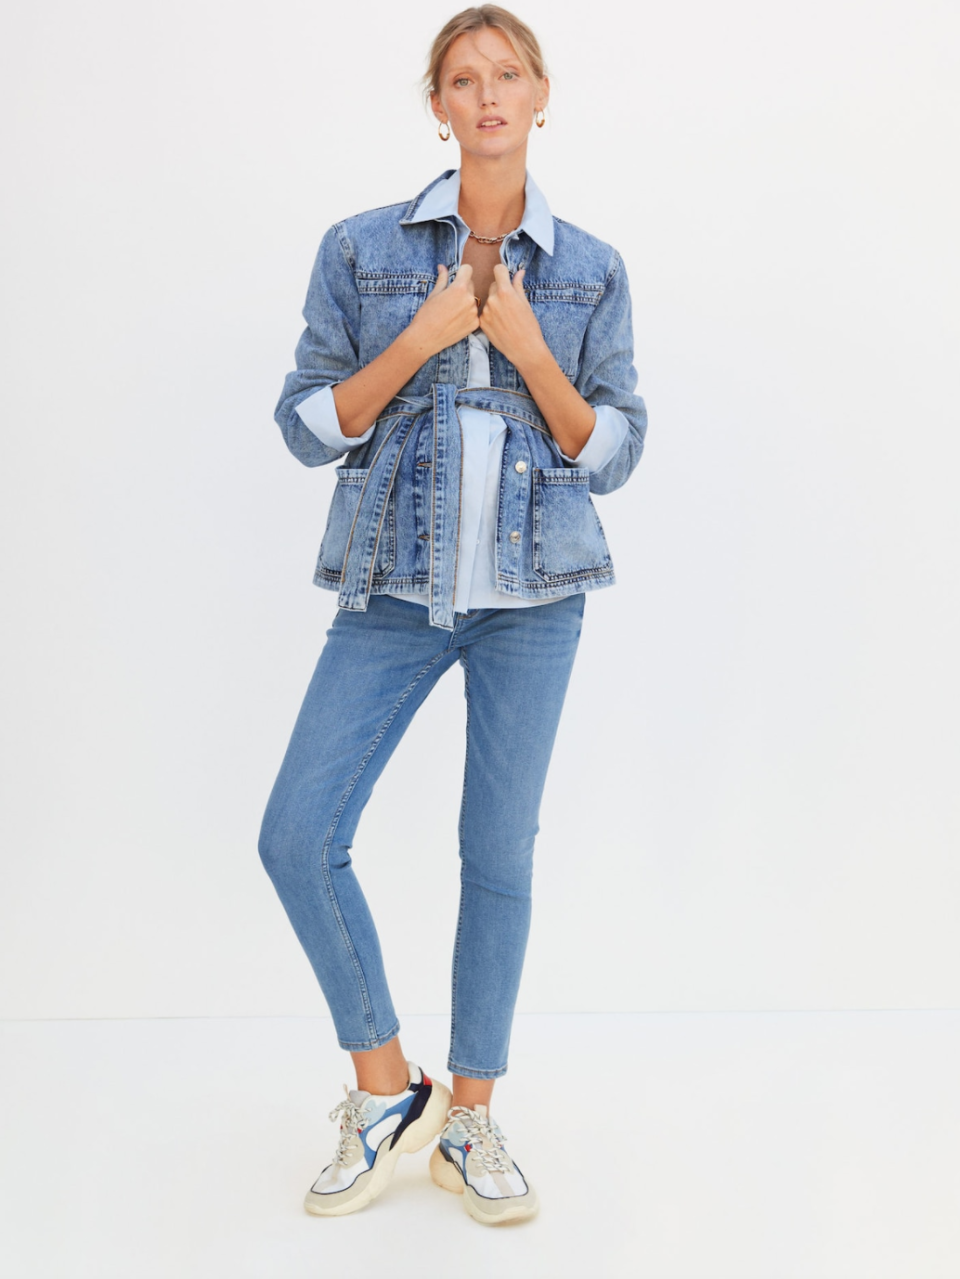 """<p>Second time around? Find classic everyday pieces at <a href=""""https://shop.mango.com/gb/women/featured/maternity-wear_d17213663"""" rel=""""nofollow noopener"""" target=""""_blank"""" data-ylk=""""slk:Mango"""" class=""""link rapid-noclick-resp"""">Mango</a> perfect for nursing a bump while already running around after a toddler. Yep, the struggle is real - but here's a no-fuss fashion brand with a small but perfectly formed range that helps you to look and feel better whilst doing it. </p><p>We love the easy, <a href=""""https://shop.mango.com/gb/women/jeans-skinny/mid-rise-jeans_87051003.html"""" rel=""""nofollow noopener"""" target=""""_blank"""" data-ylk=""""slk:stretch over-bump denim"""" class=""""link rapid-noclick-resp"""">stretch over-bump denim</a> for chic, outdoors mamas.</p><p><a class=""""link rapid-noclick-resp"""" href=""""https://go.redirectingat.com?id=127X1599956&url=https%3A%2F%2Fshop.mango.com%2Fgb%2Fwomen%2Ffeatured%2Fmaternity-wear_d17213663&sref=https%3A%2F%2Fwww.womenshealthmag.com%2Fuk%2Fhealth%2Fg36261049%2F16-best-maternity-clothes-and-brands-for-trendy-bumps%2F"""" rel=""""nofollow noopener"""" target=""""_blank"""" data-ylk=""""slk:SHOP NOW"""">SHOP NOW</a></p>"""